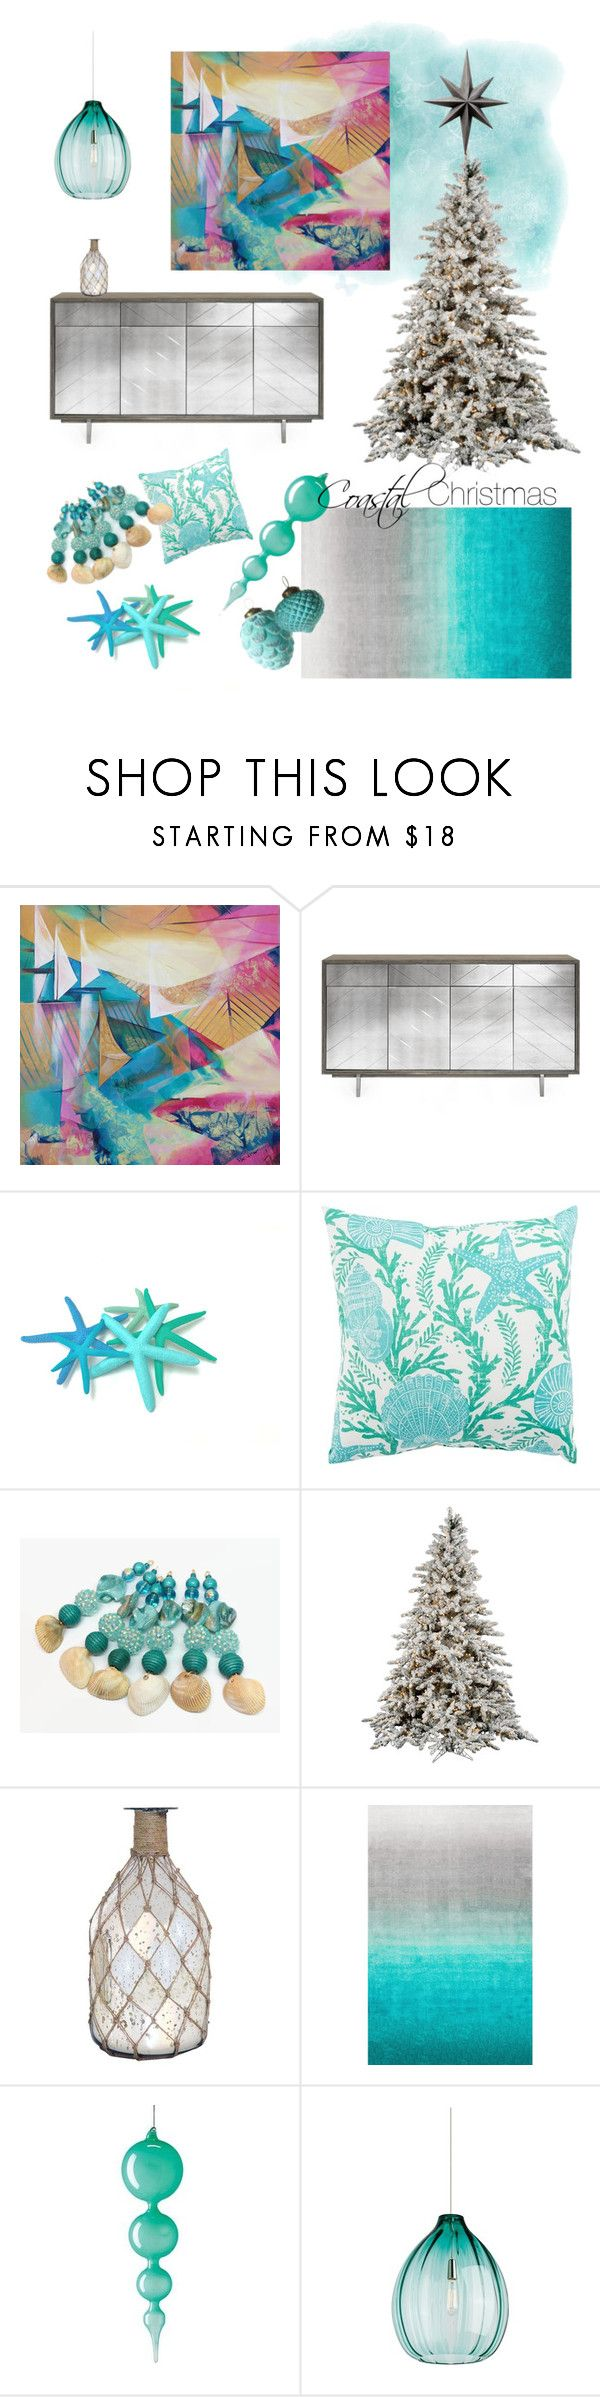 Christmas at the Beach House by kacix on Polyvore featuring interior, interiors, interior design, home, home decor, interior decorating, Tech Lighting, nuLOOM, Jaipur and Jim Marvin